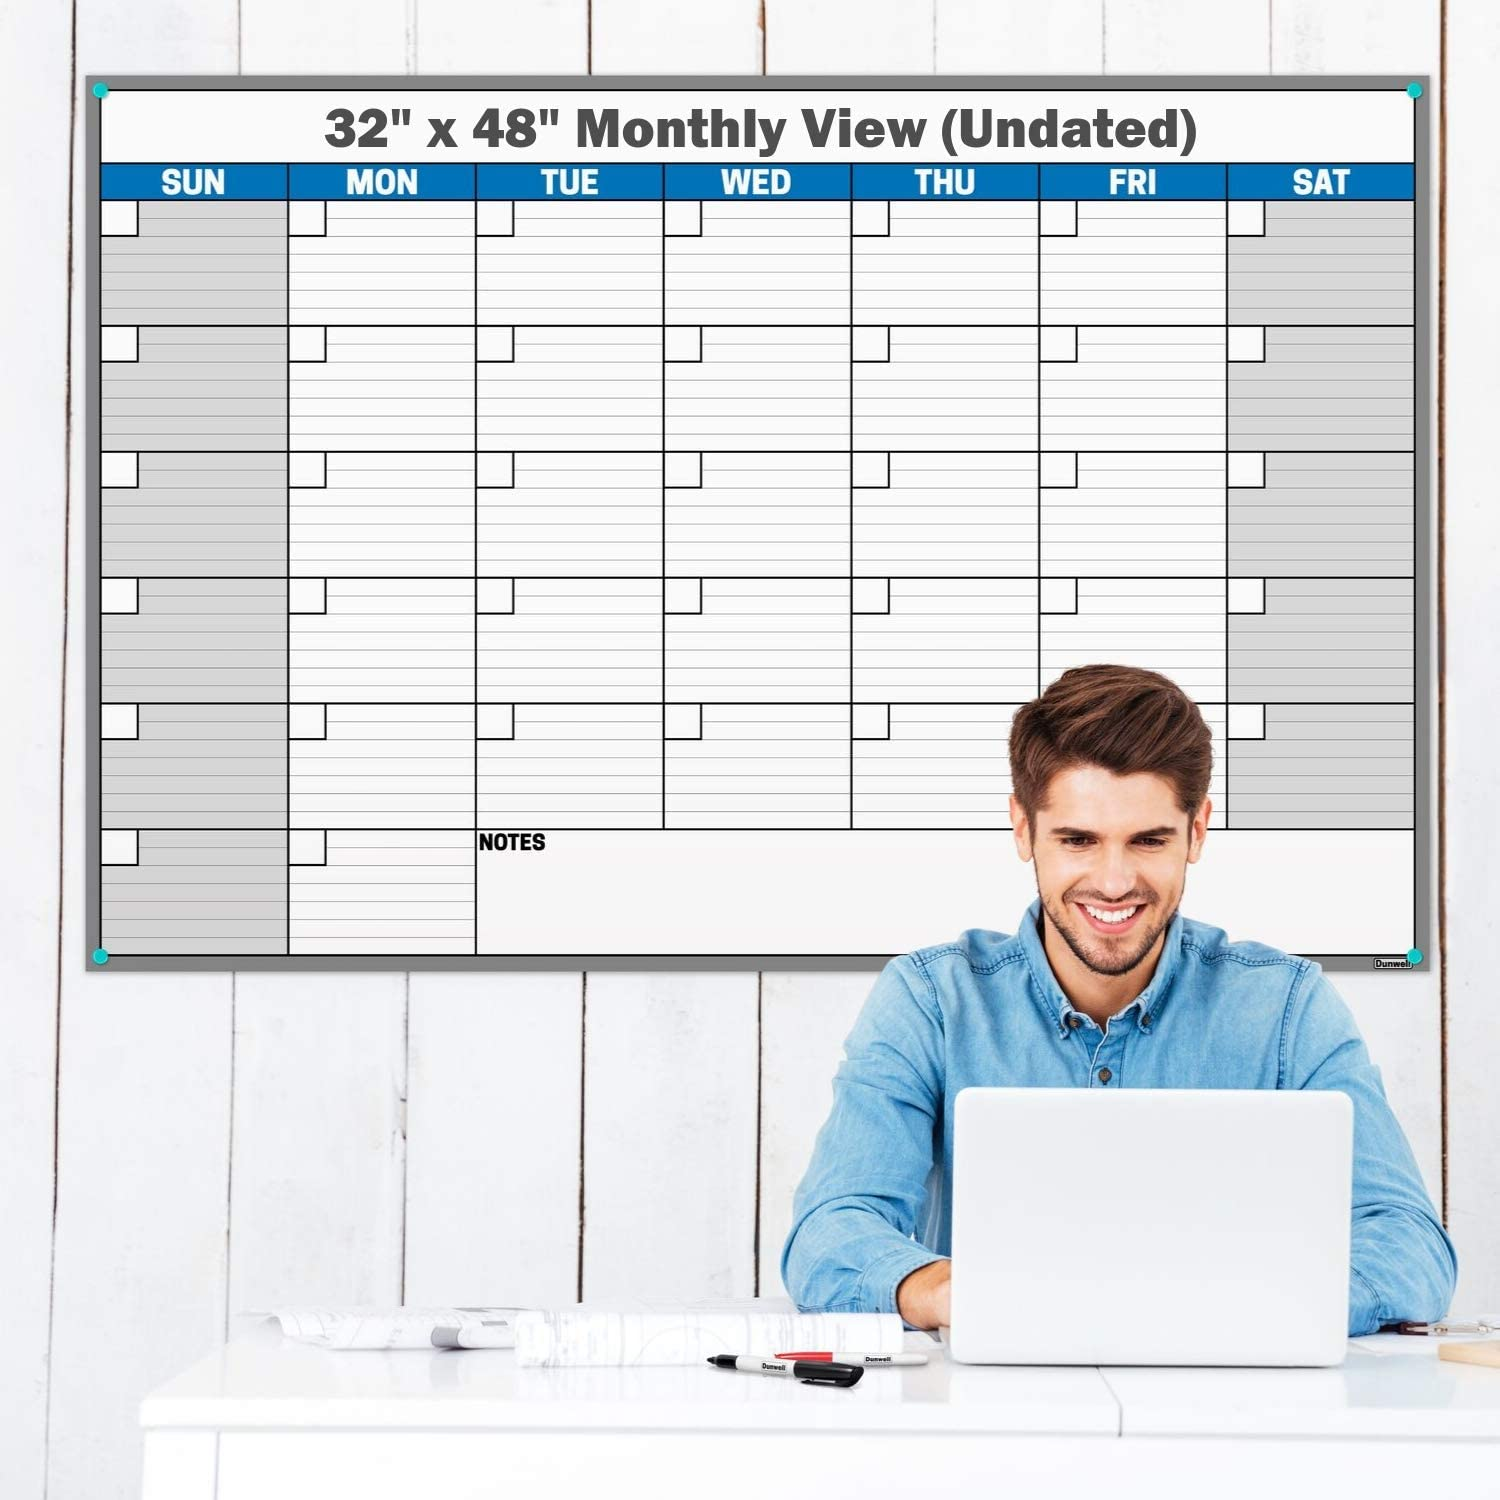 Dunwell Giant 32x48 Erasable Monthly-Weekly Undated Planner (Blue), Reversible Wet Erase and Dry Erase Monthly Weekly Calendar, Laminated Wall Poster Calendar, Reusable, Shipped Rolled Not Folded